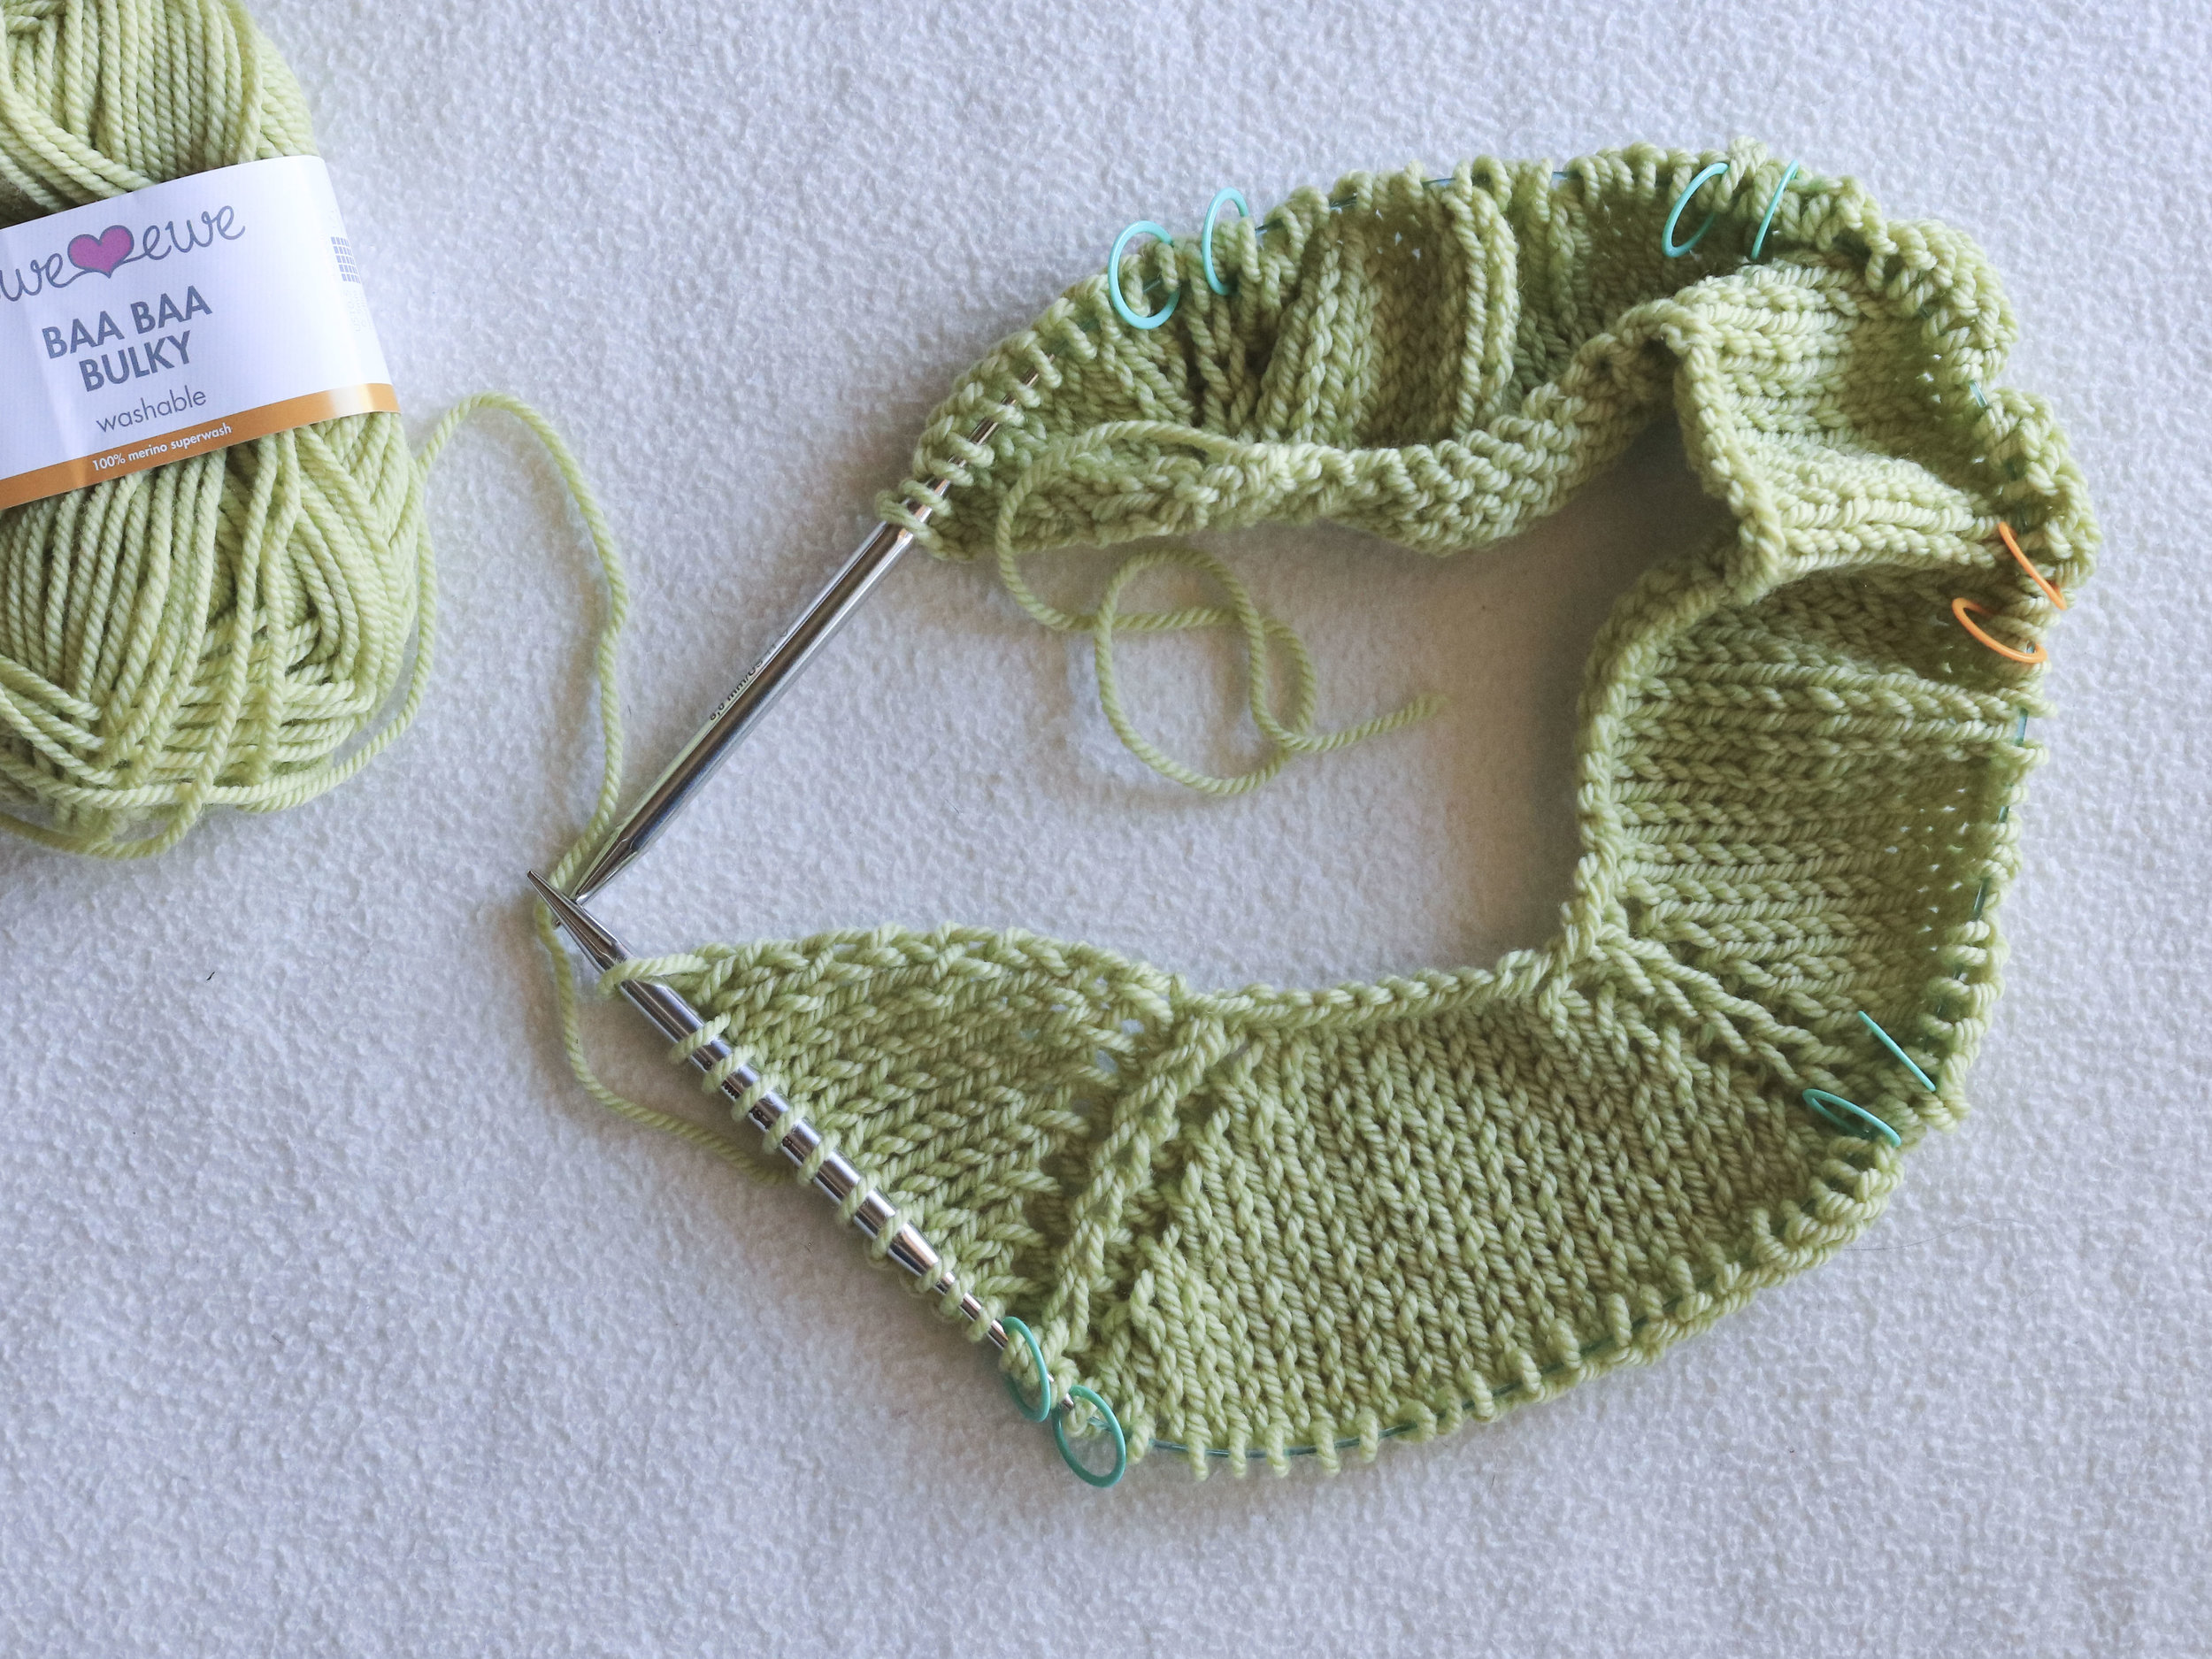 Knitting the neckline of the Ursa sweater in Ewe Ewe Baa Baa Bulky merino yarn.